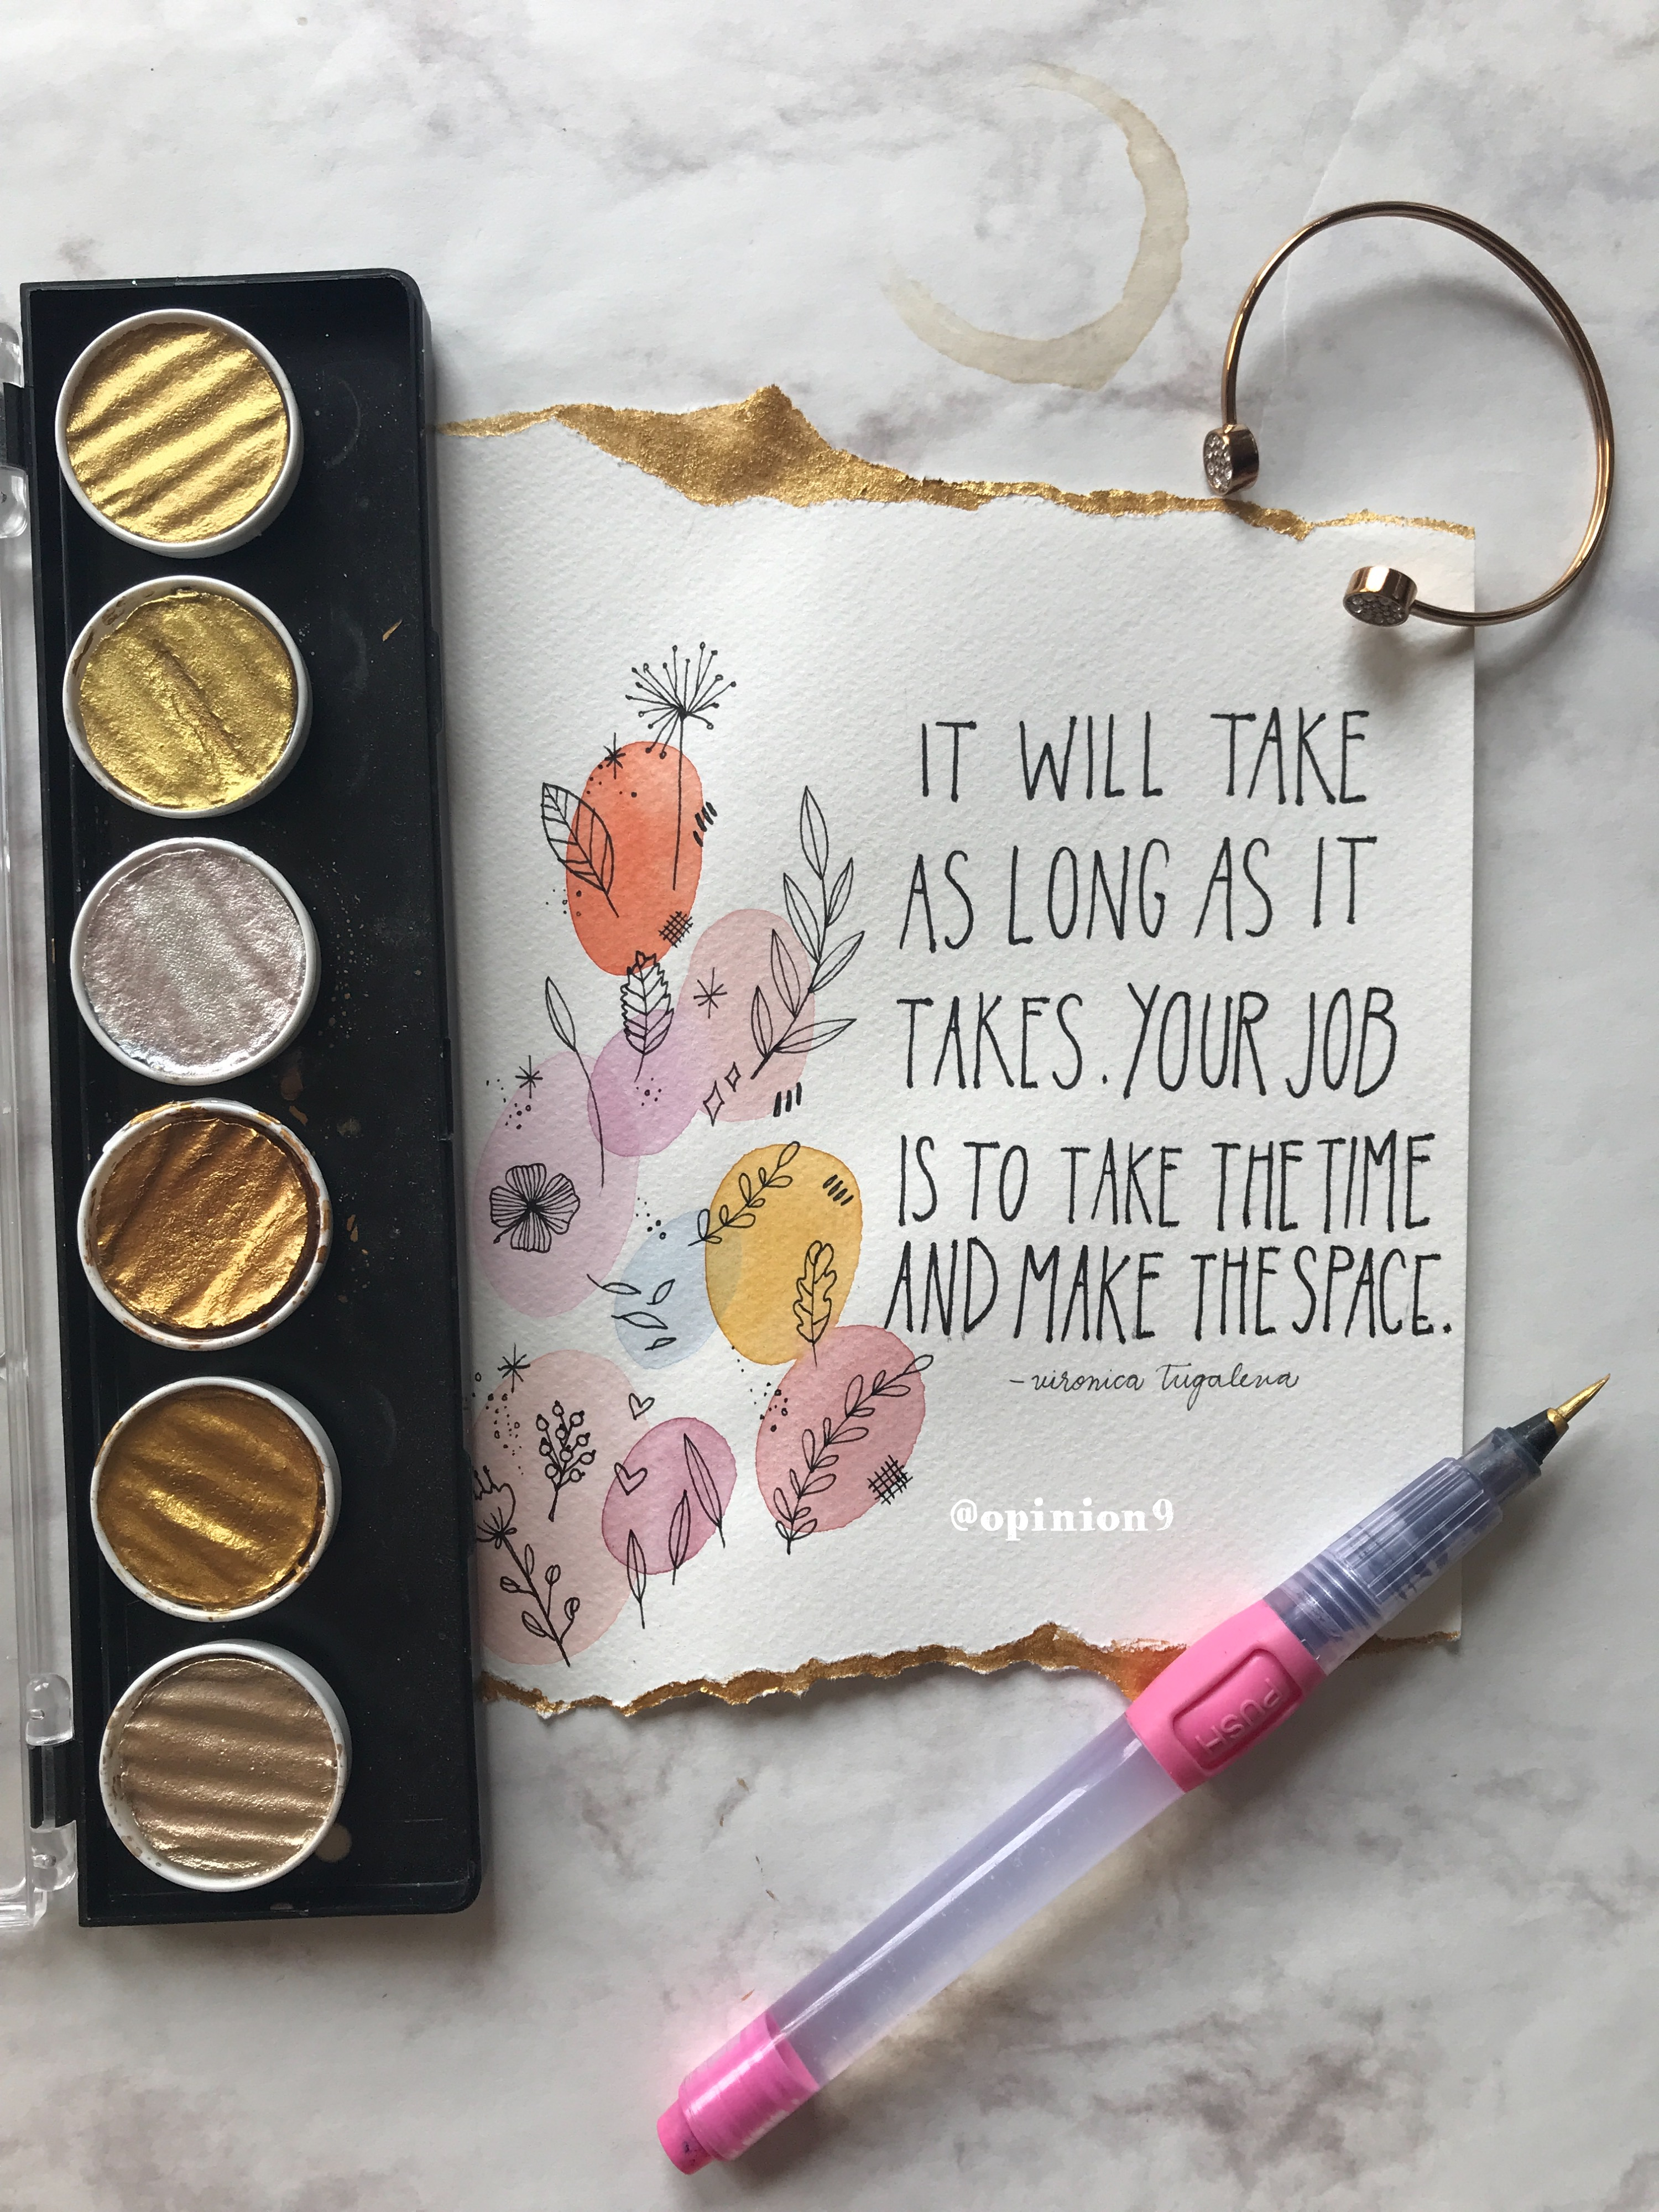 Book Review: The Art of Doing (+ Quote!)